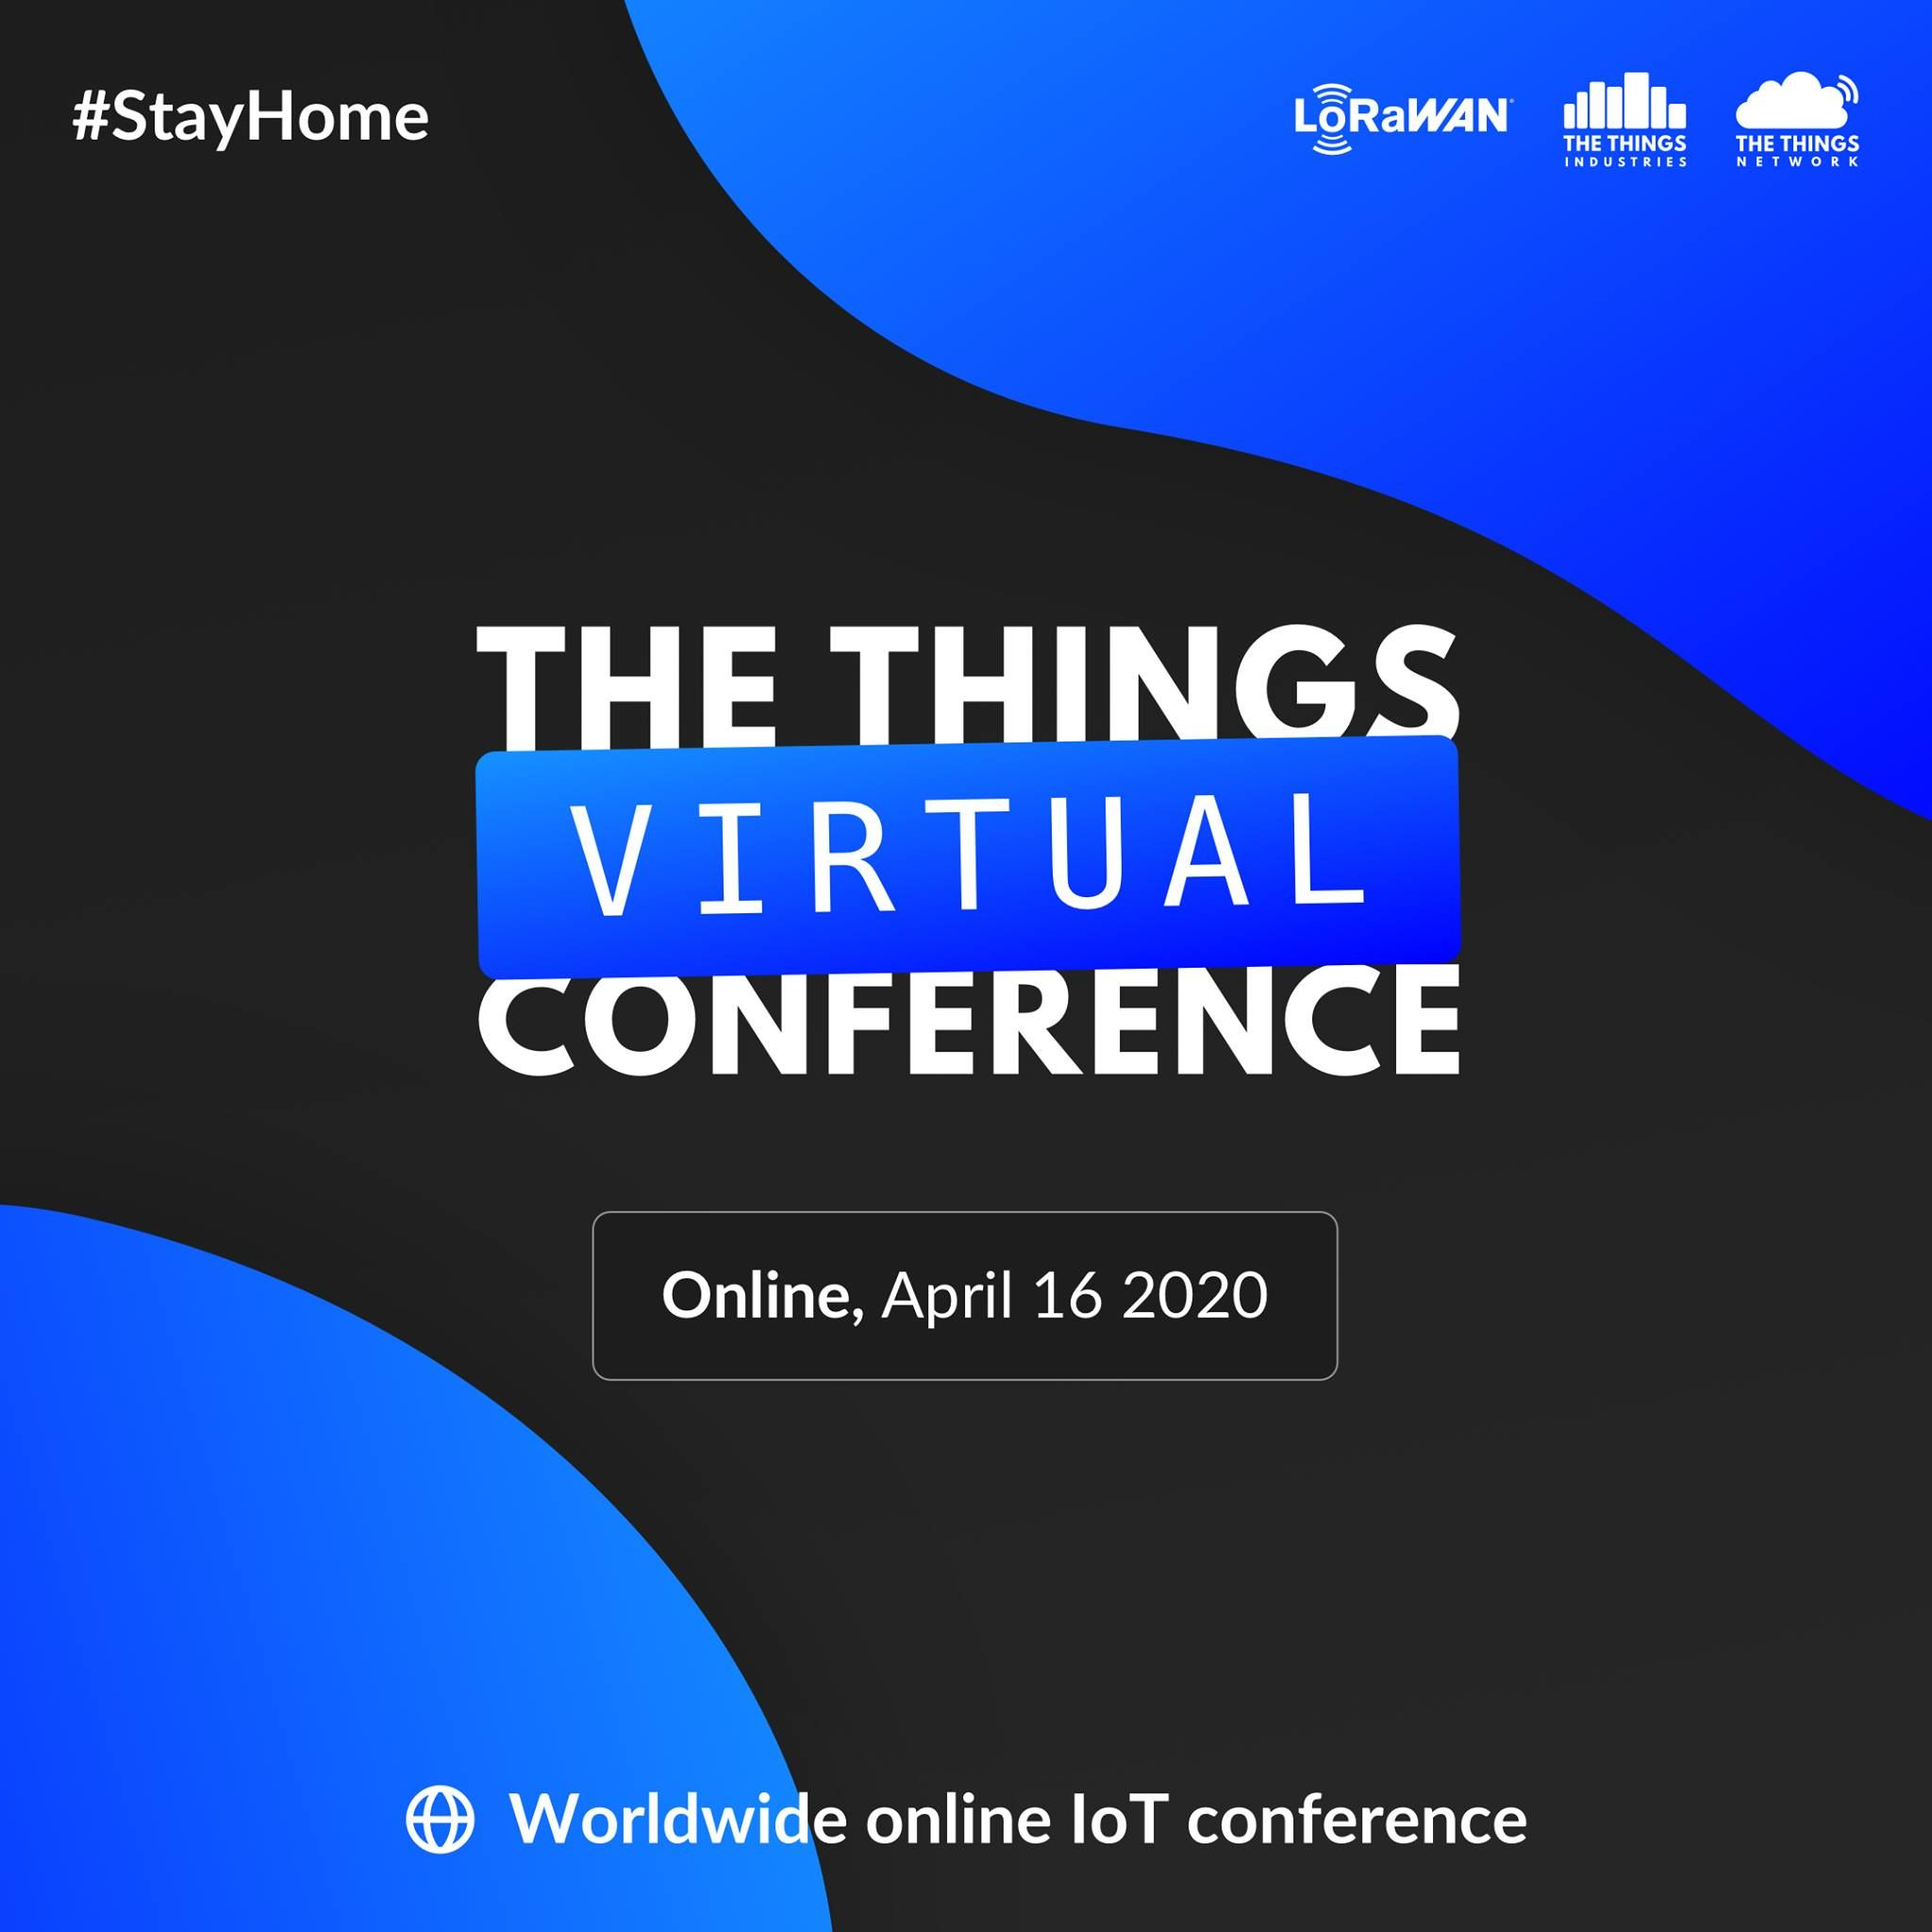 The Things Virtual Conference 2020